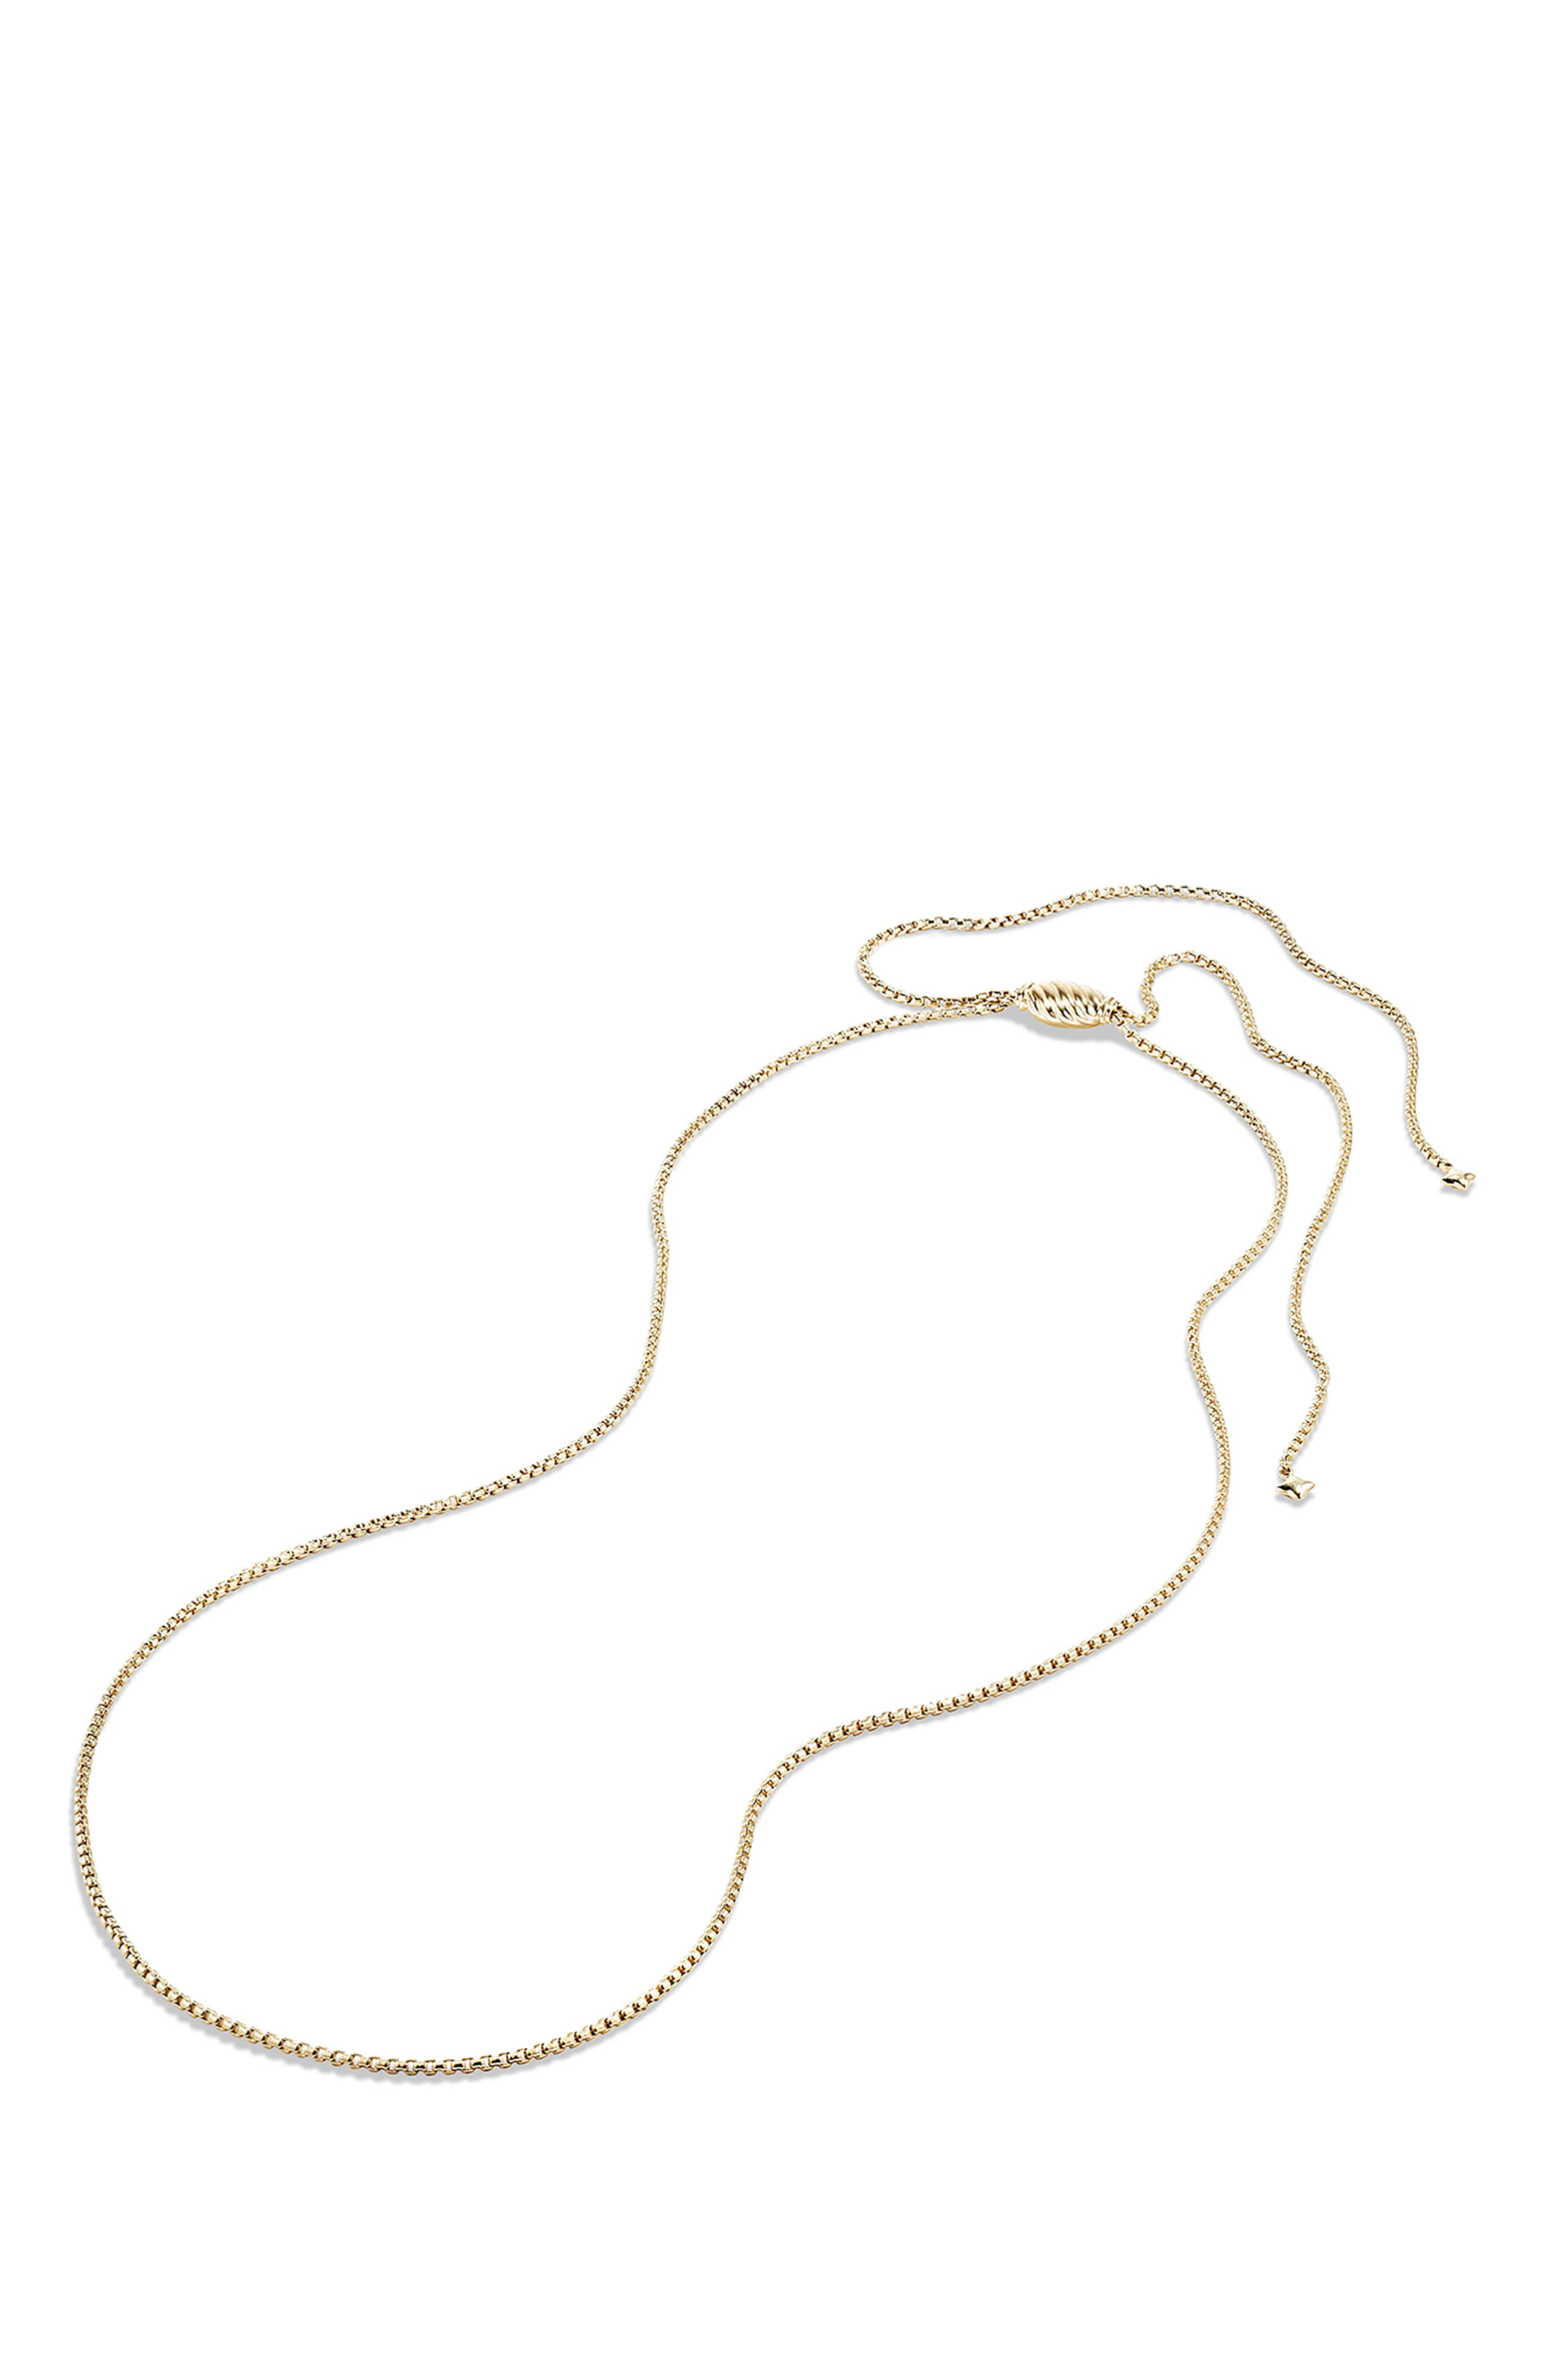 Box Chain Necklace in 18K Gold,                             Alternate thumbnail 3, color,                             YELLOW GOLD